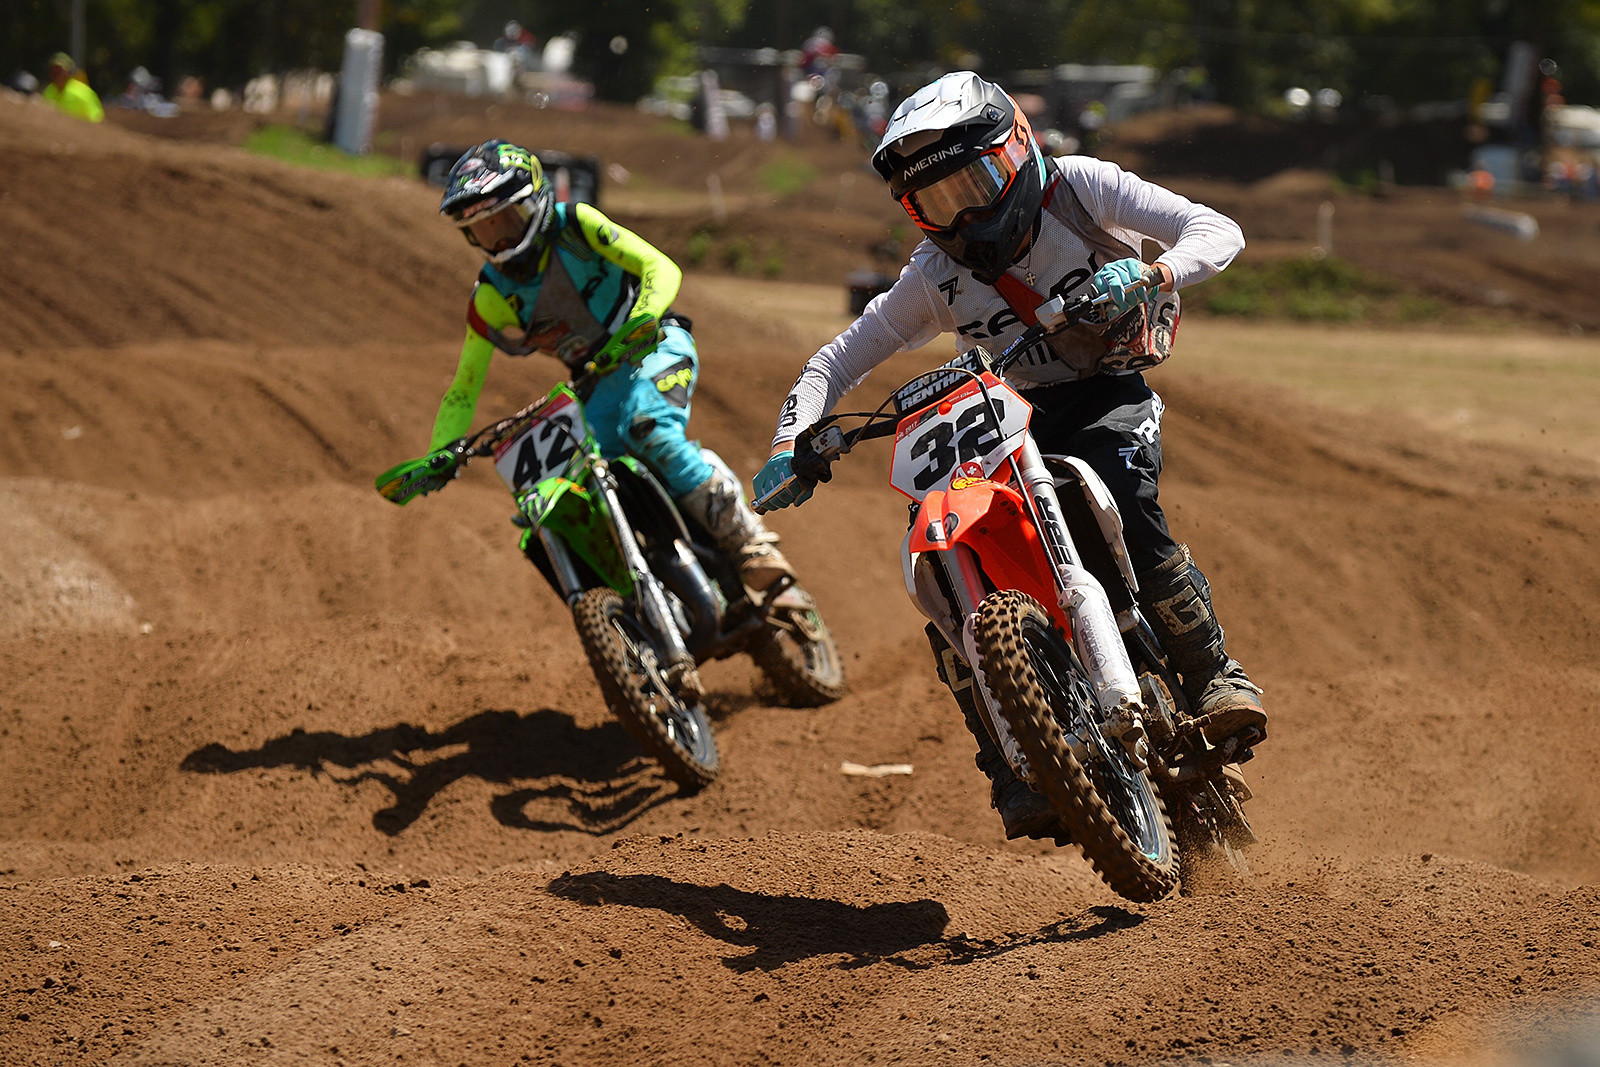 The minicycle classes served up some of the best racing of the week at Loretta Lynn's.